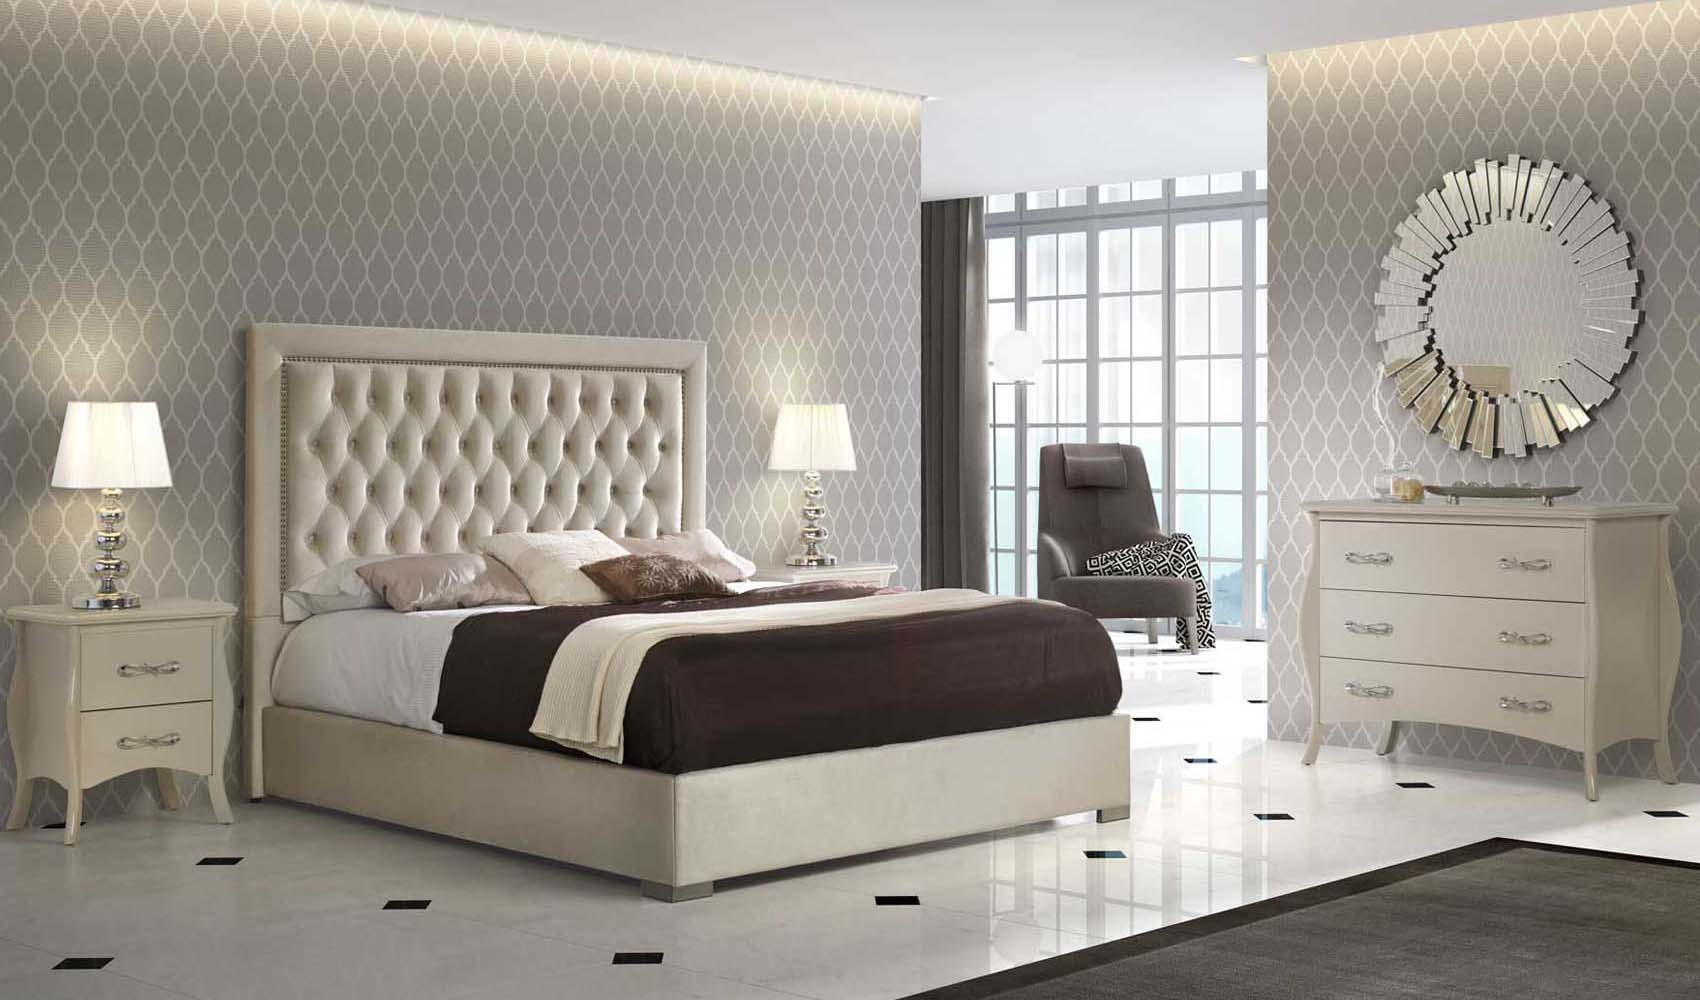 High End Modern Design Cream Bedroom Set throughout 10 Awesome Initiatives of How to Make Modern Bedroom Collections